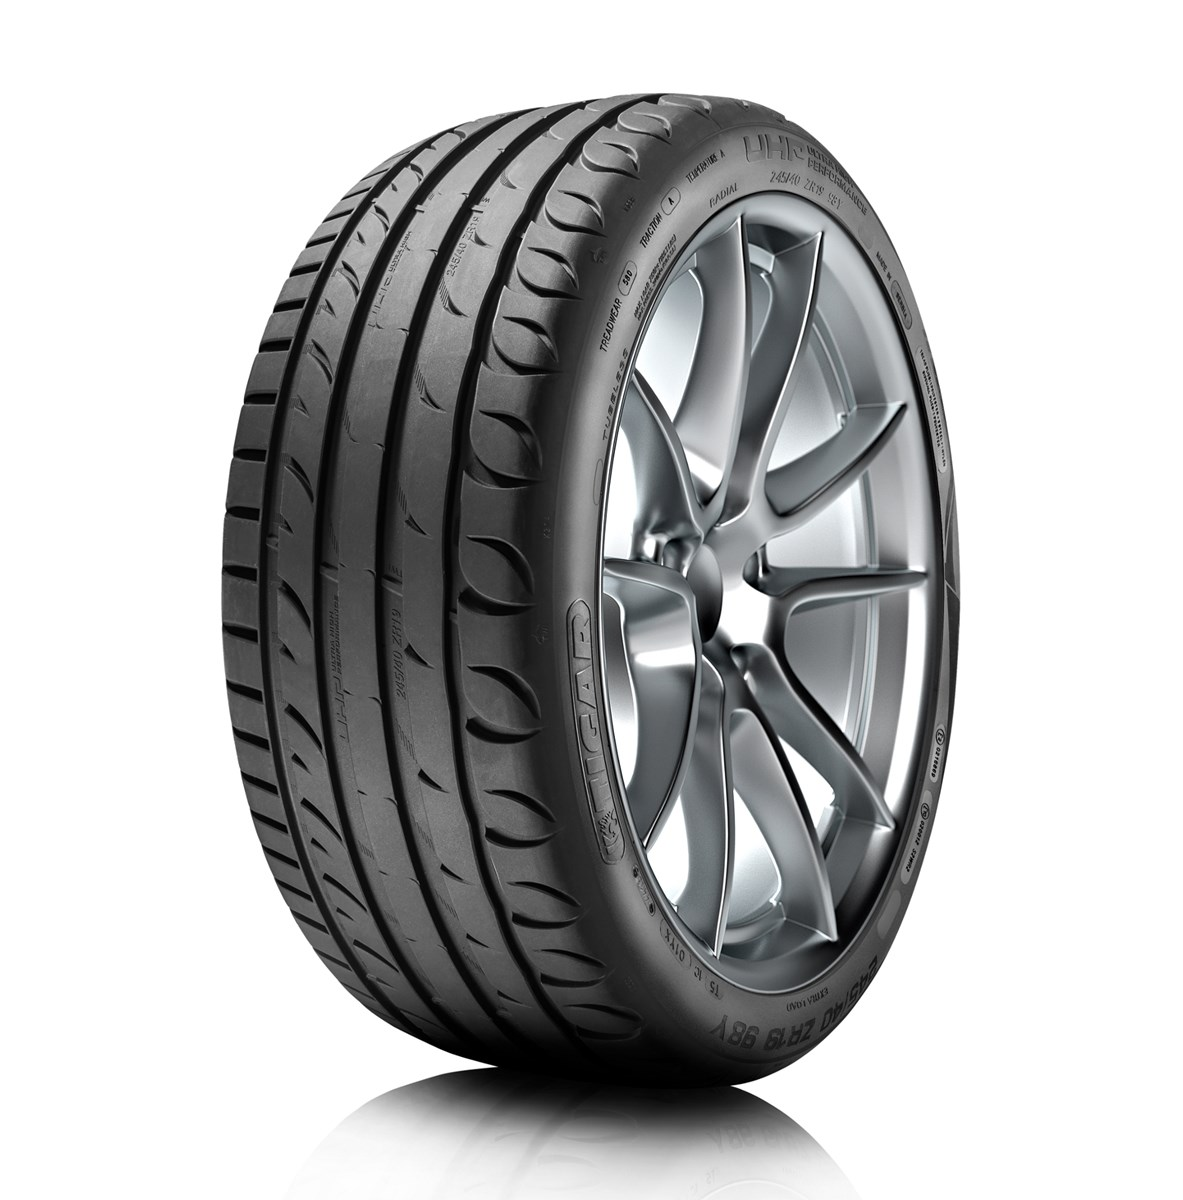 Pneu 195/55R15 85H TIGAR HIGH PERFORMANCE